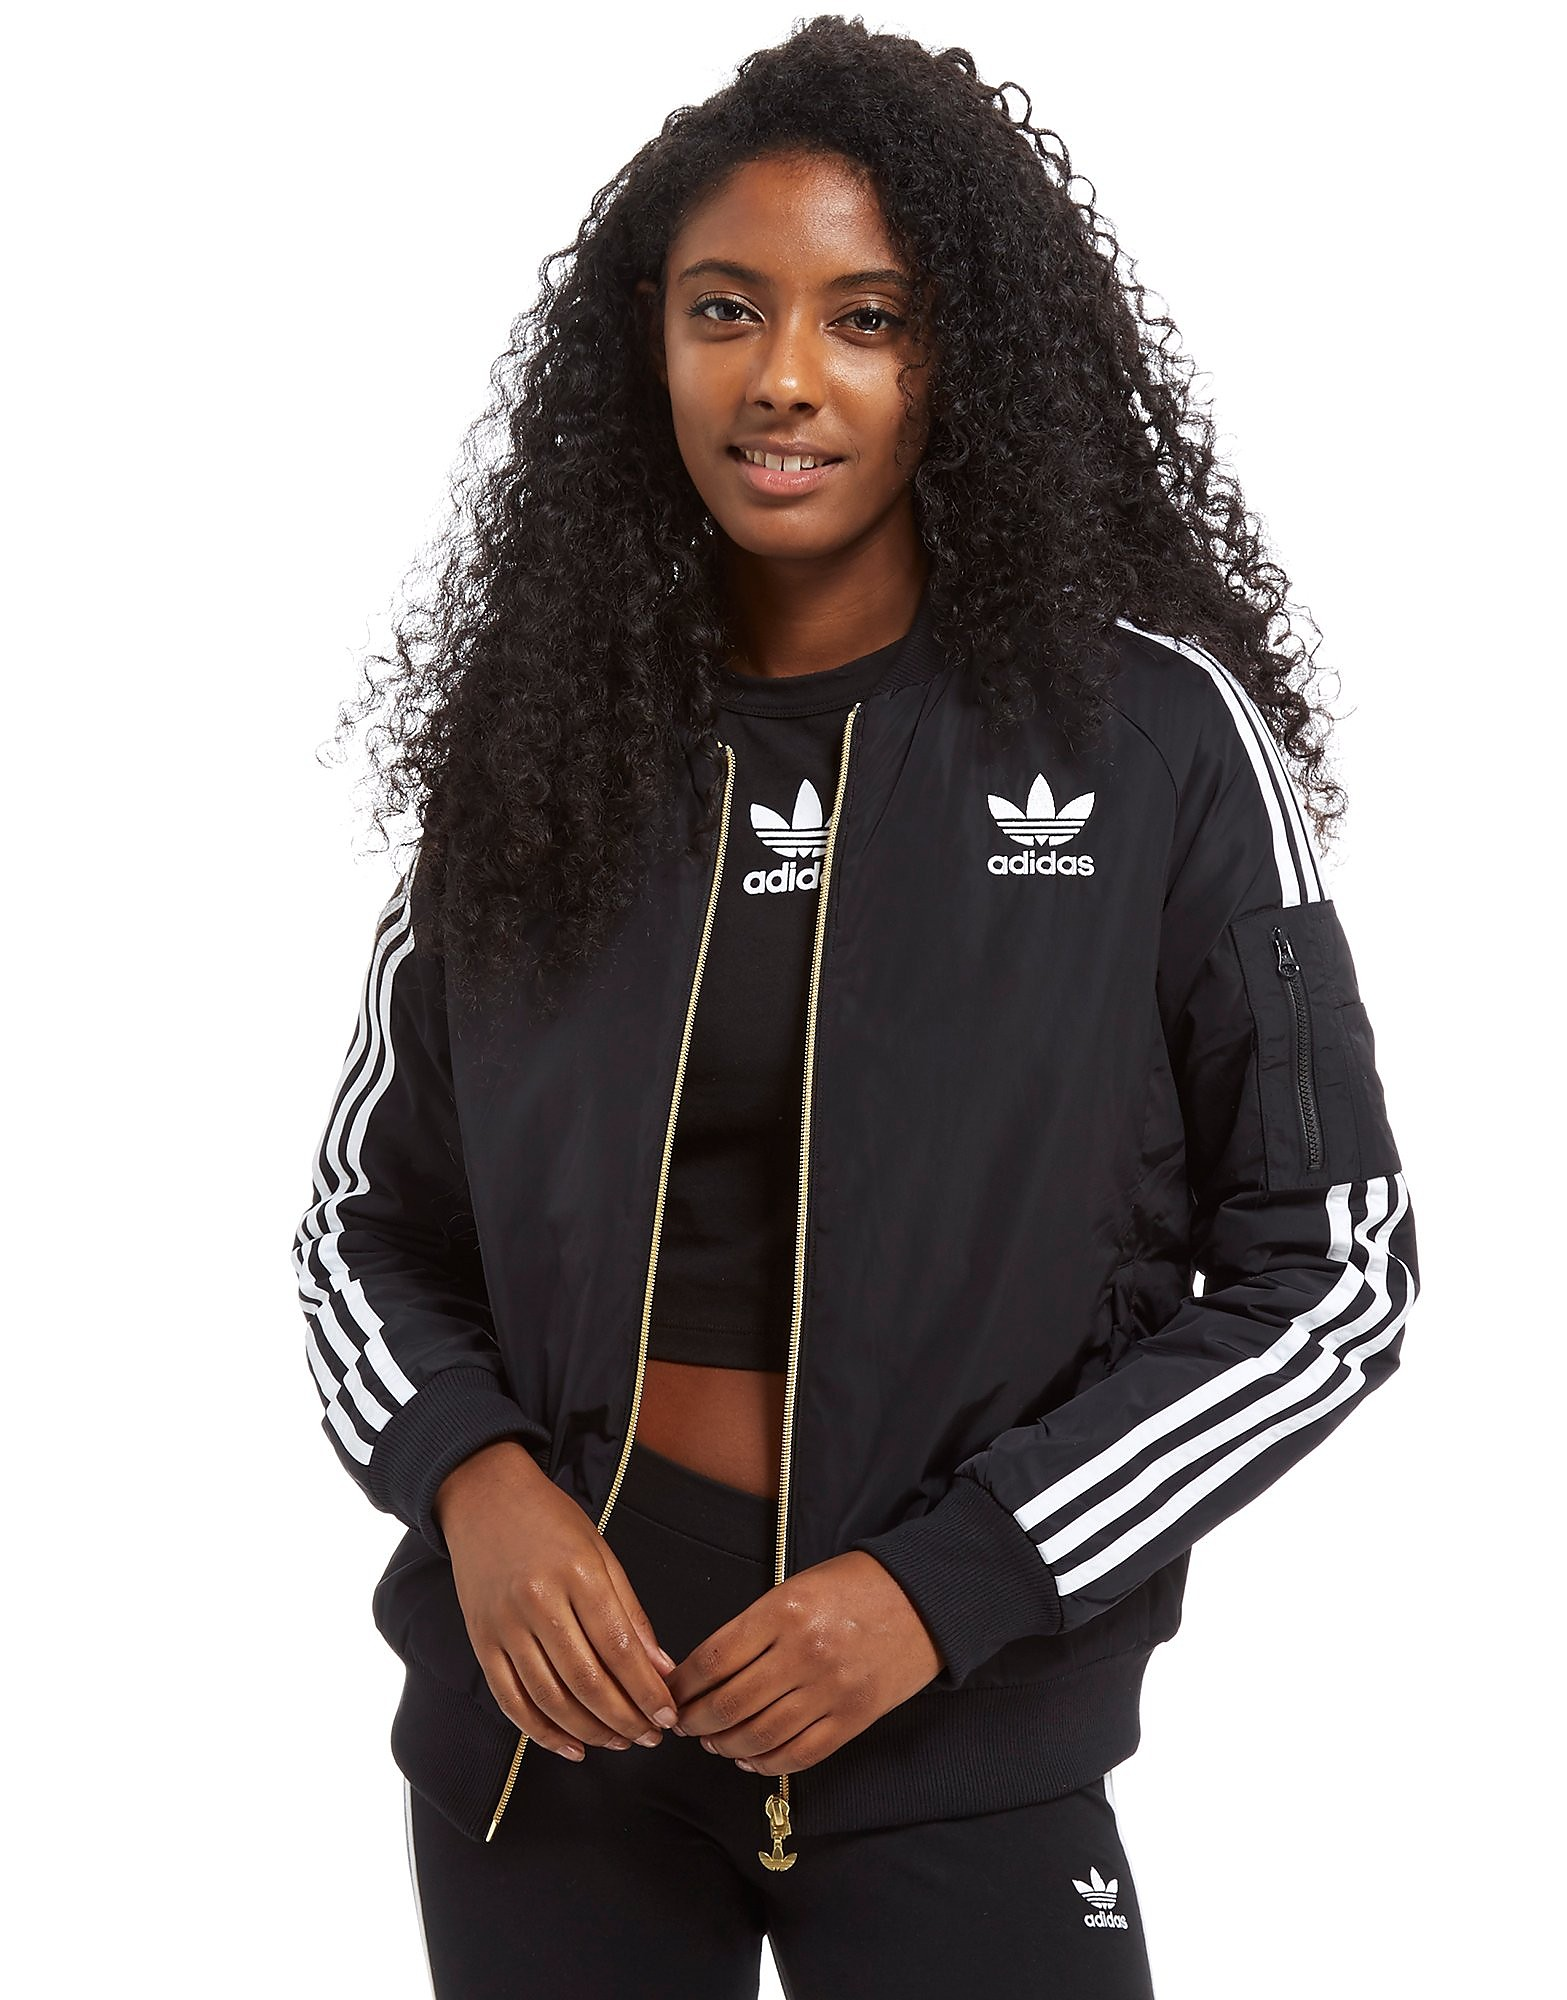 adidas Originals Superstar Jacket